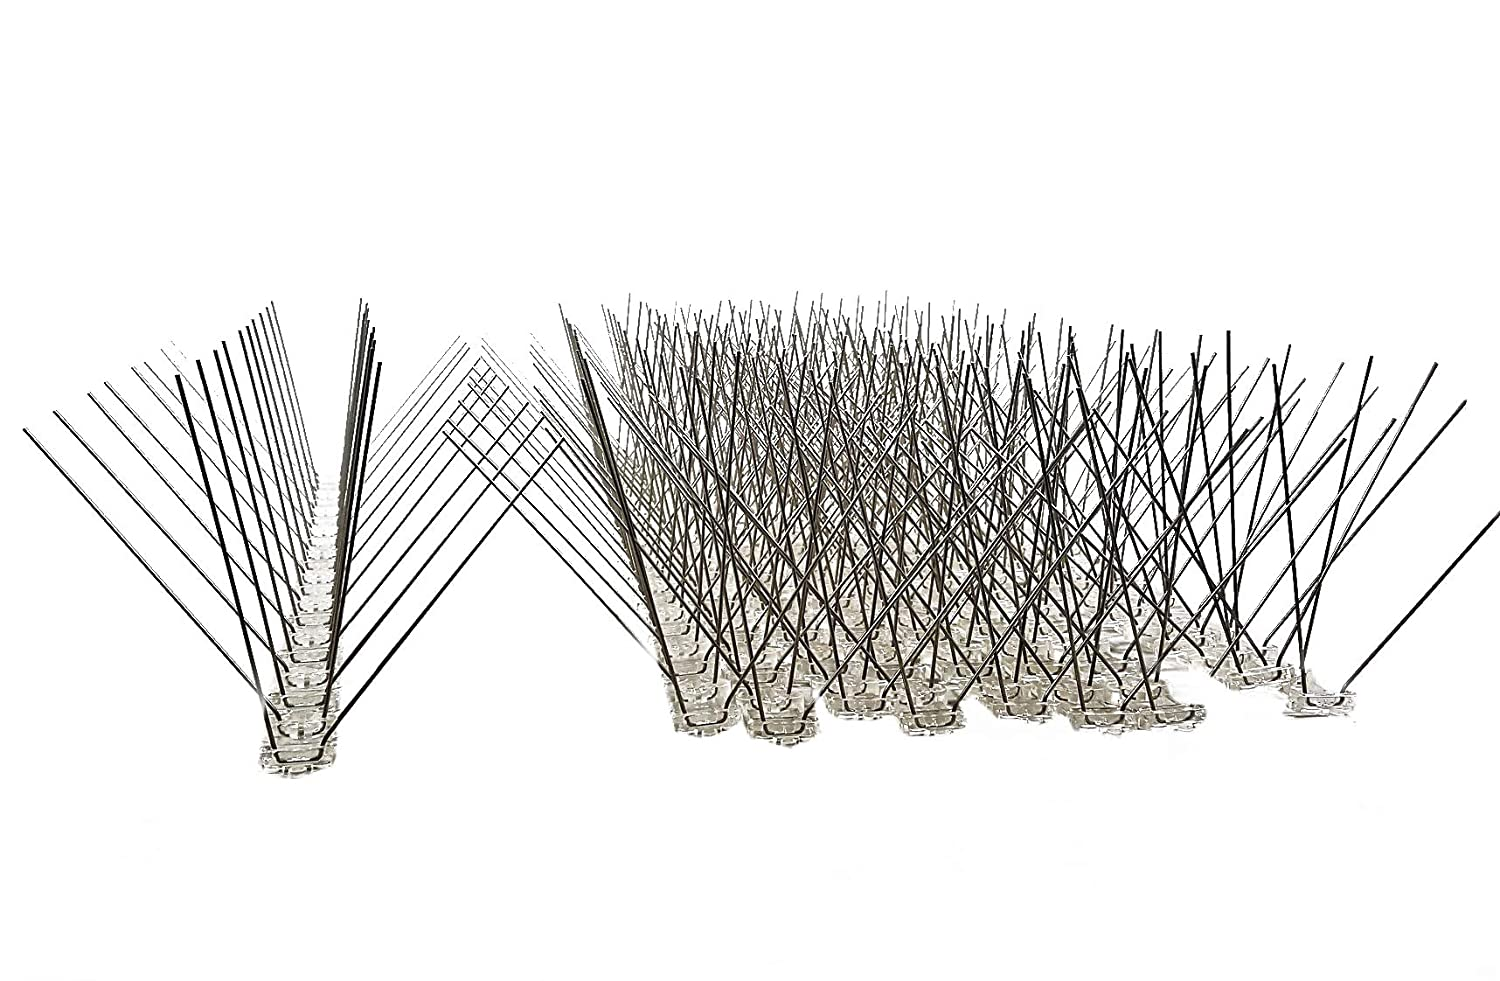 10 pcs (5 metre) pack BIRD SPIKES: 80 stainless steel spikes per metre, 50 cm polycarbonate base